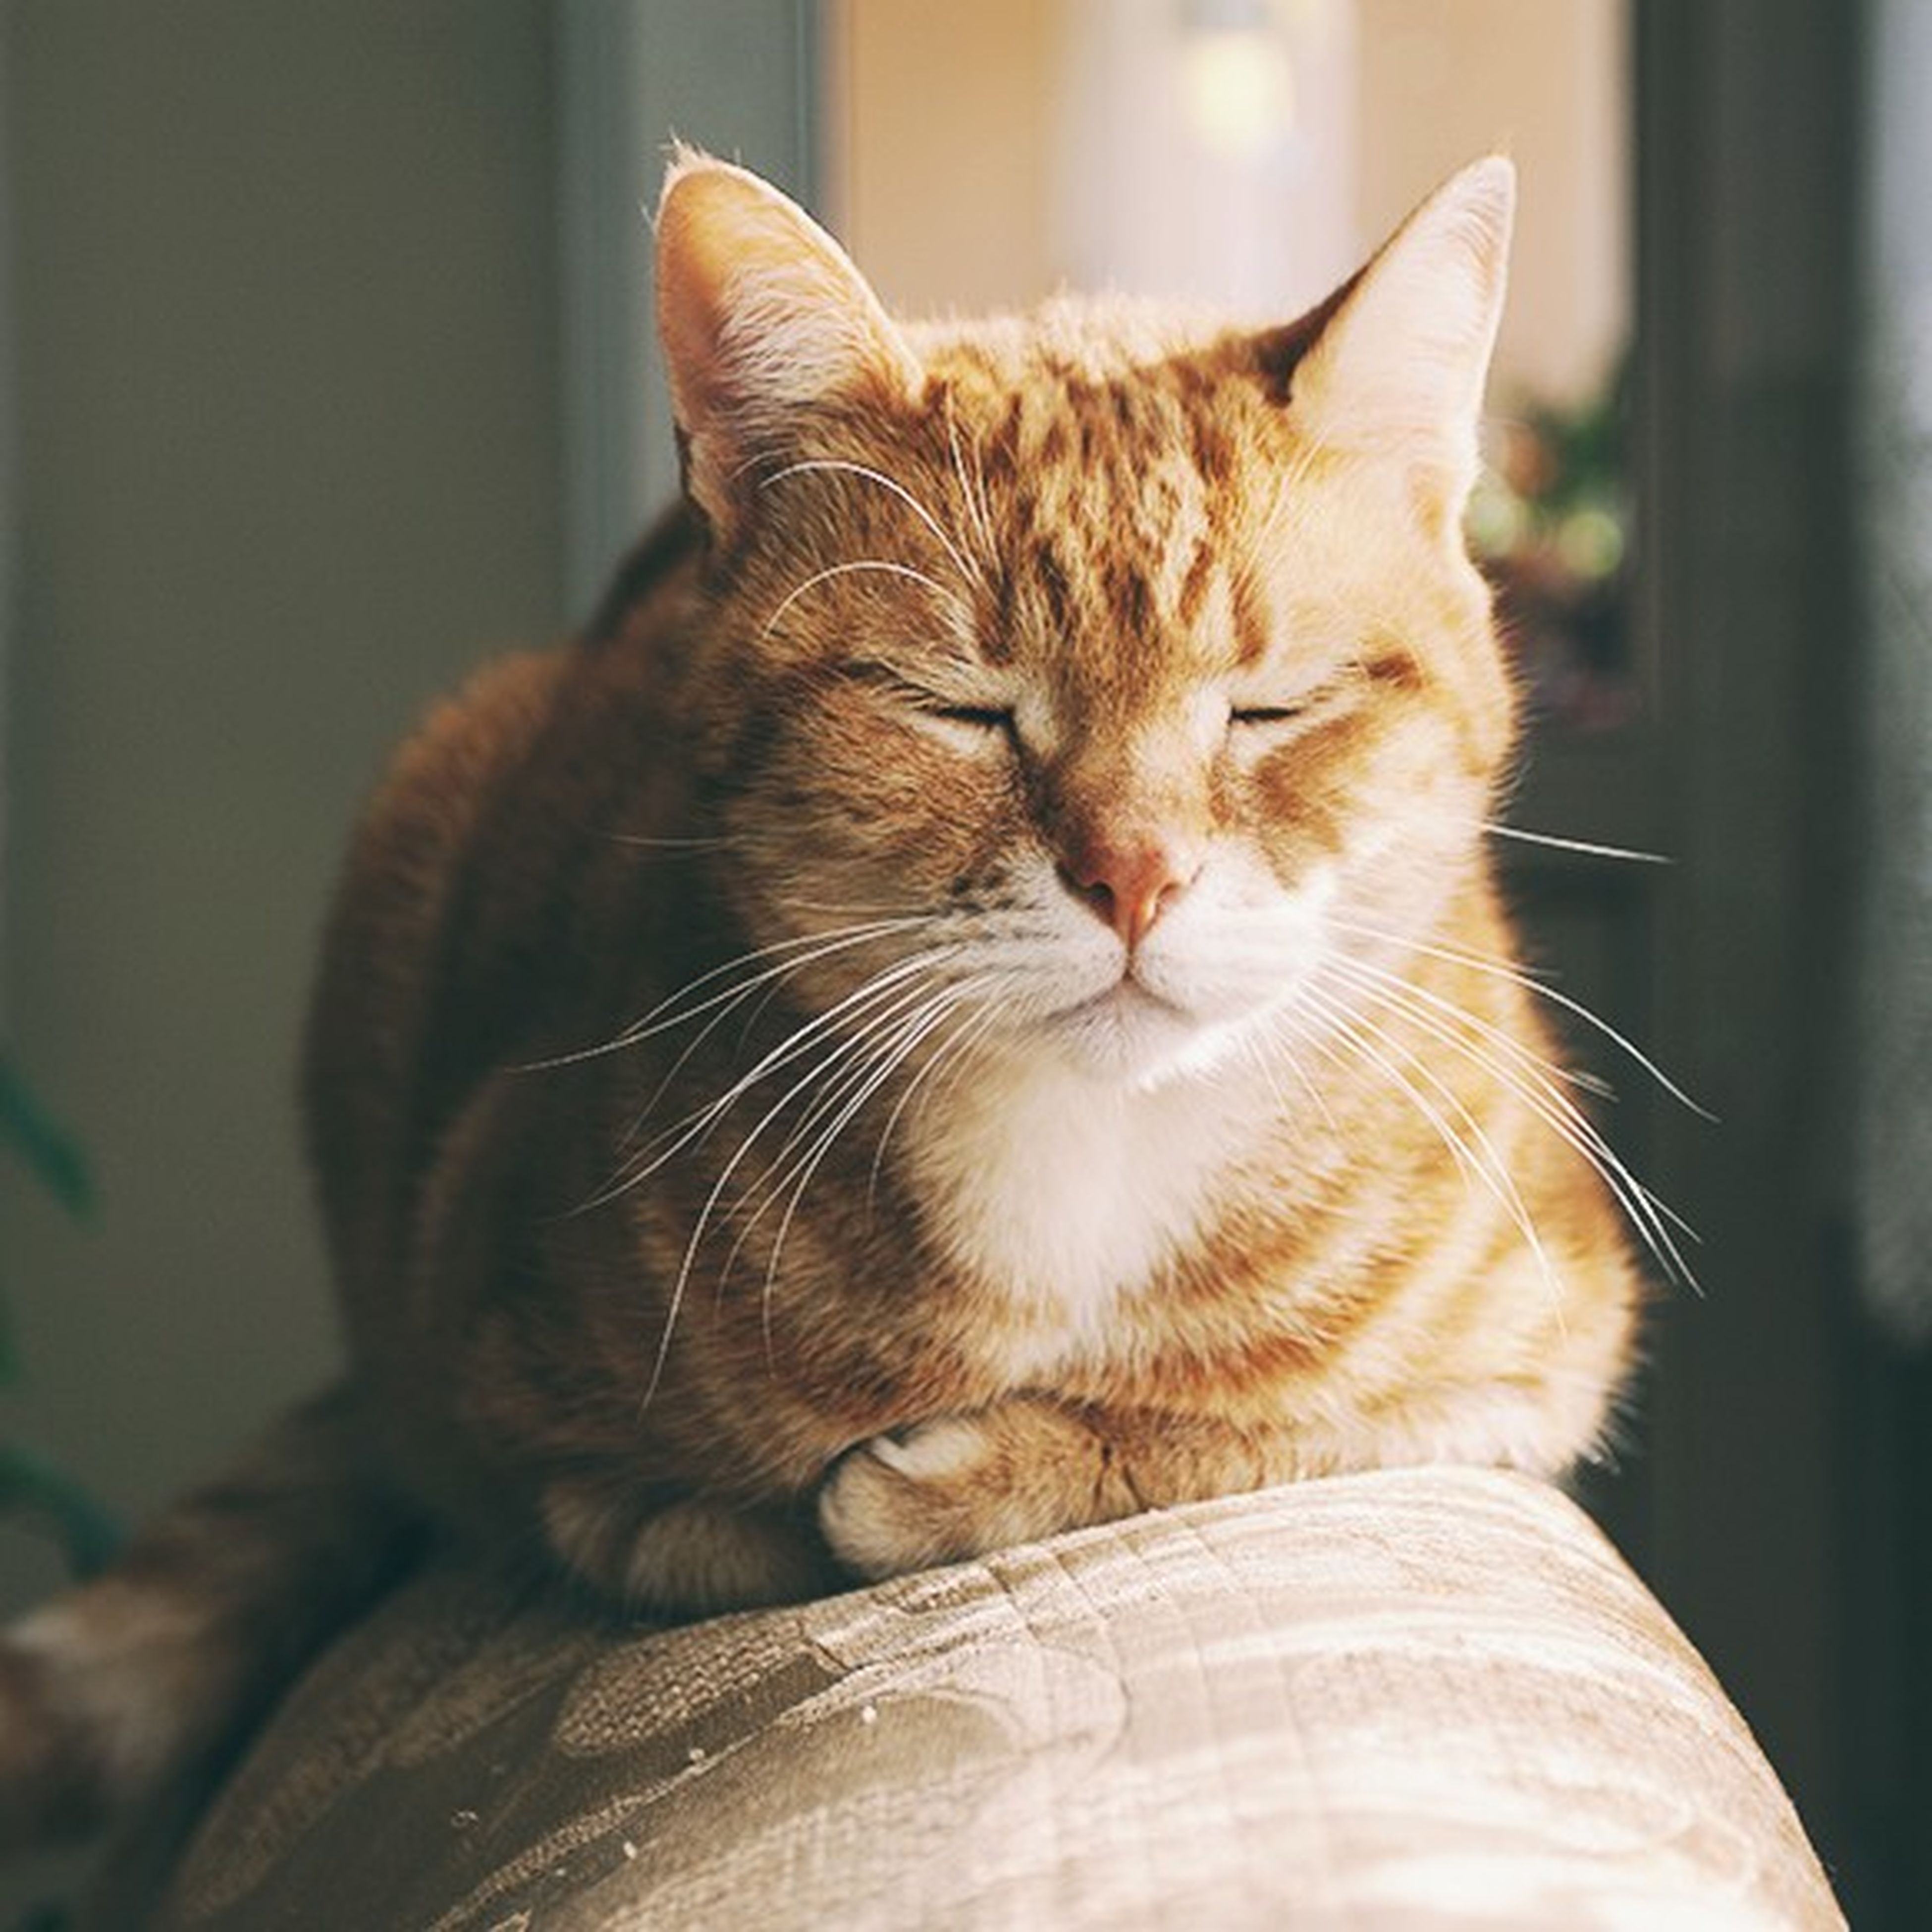 domestic cat, cat, feline, animal themes, one animal, pets, mammal, whisker, domestic animals, focus on foreground, close-up, relaxation, looking away, indoors, animal head, sitting, tabby, alertness, side view, portrait